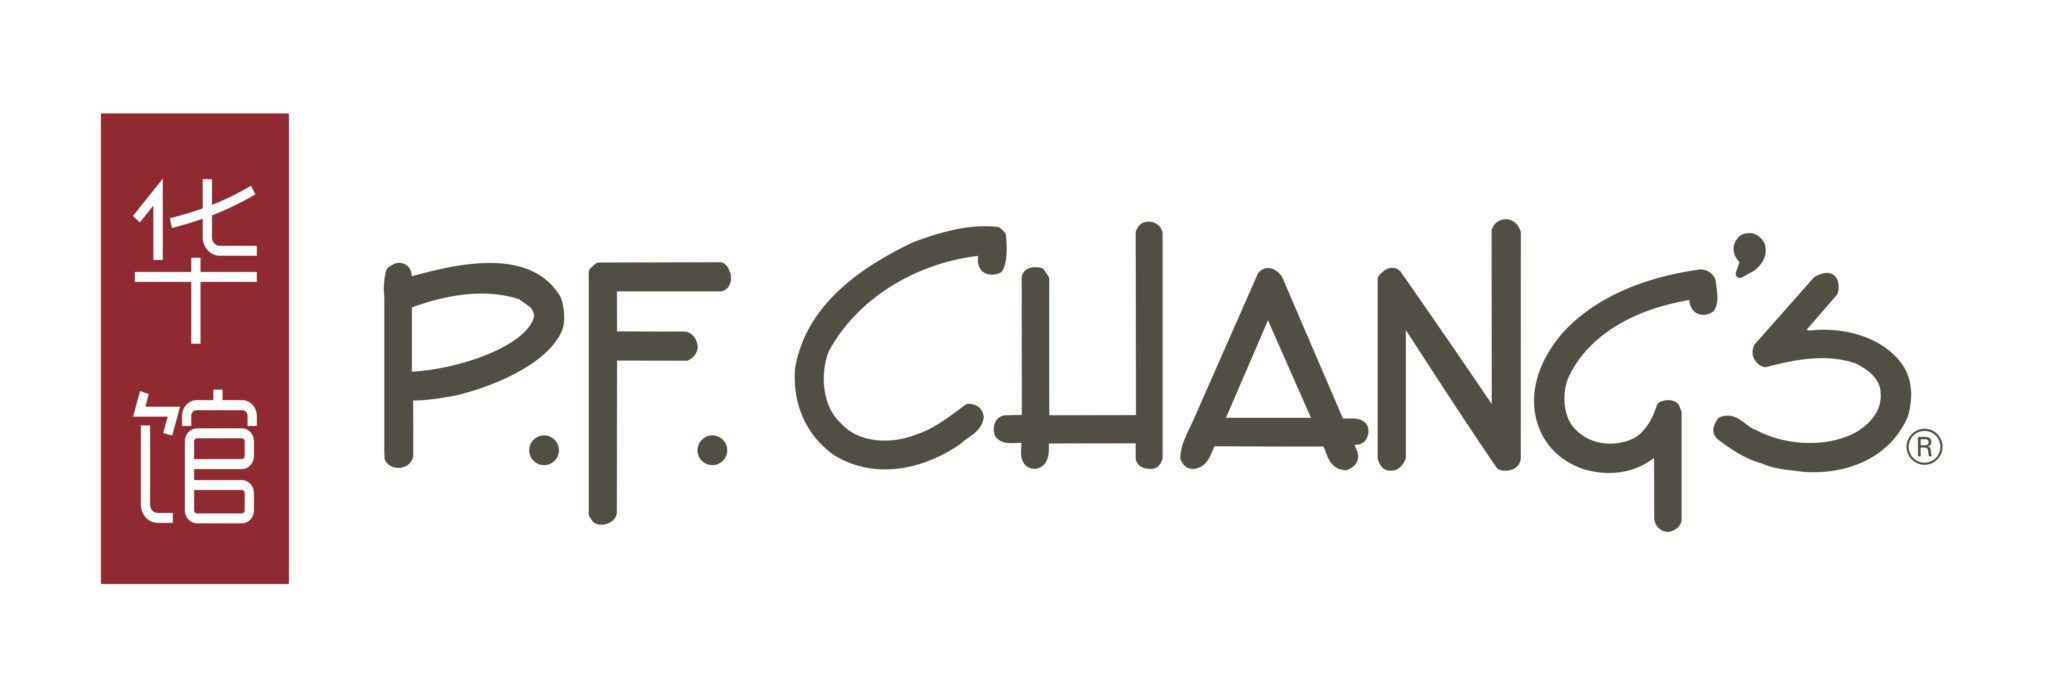 logo P.F. Changs.jpg